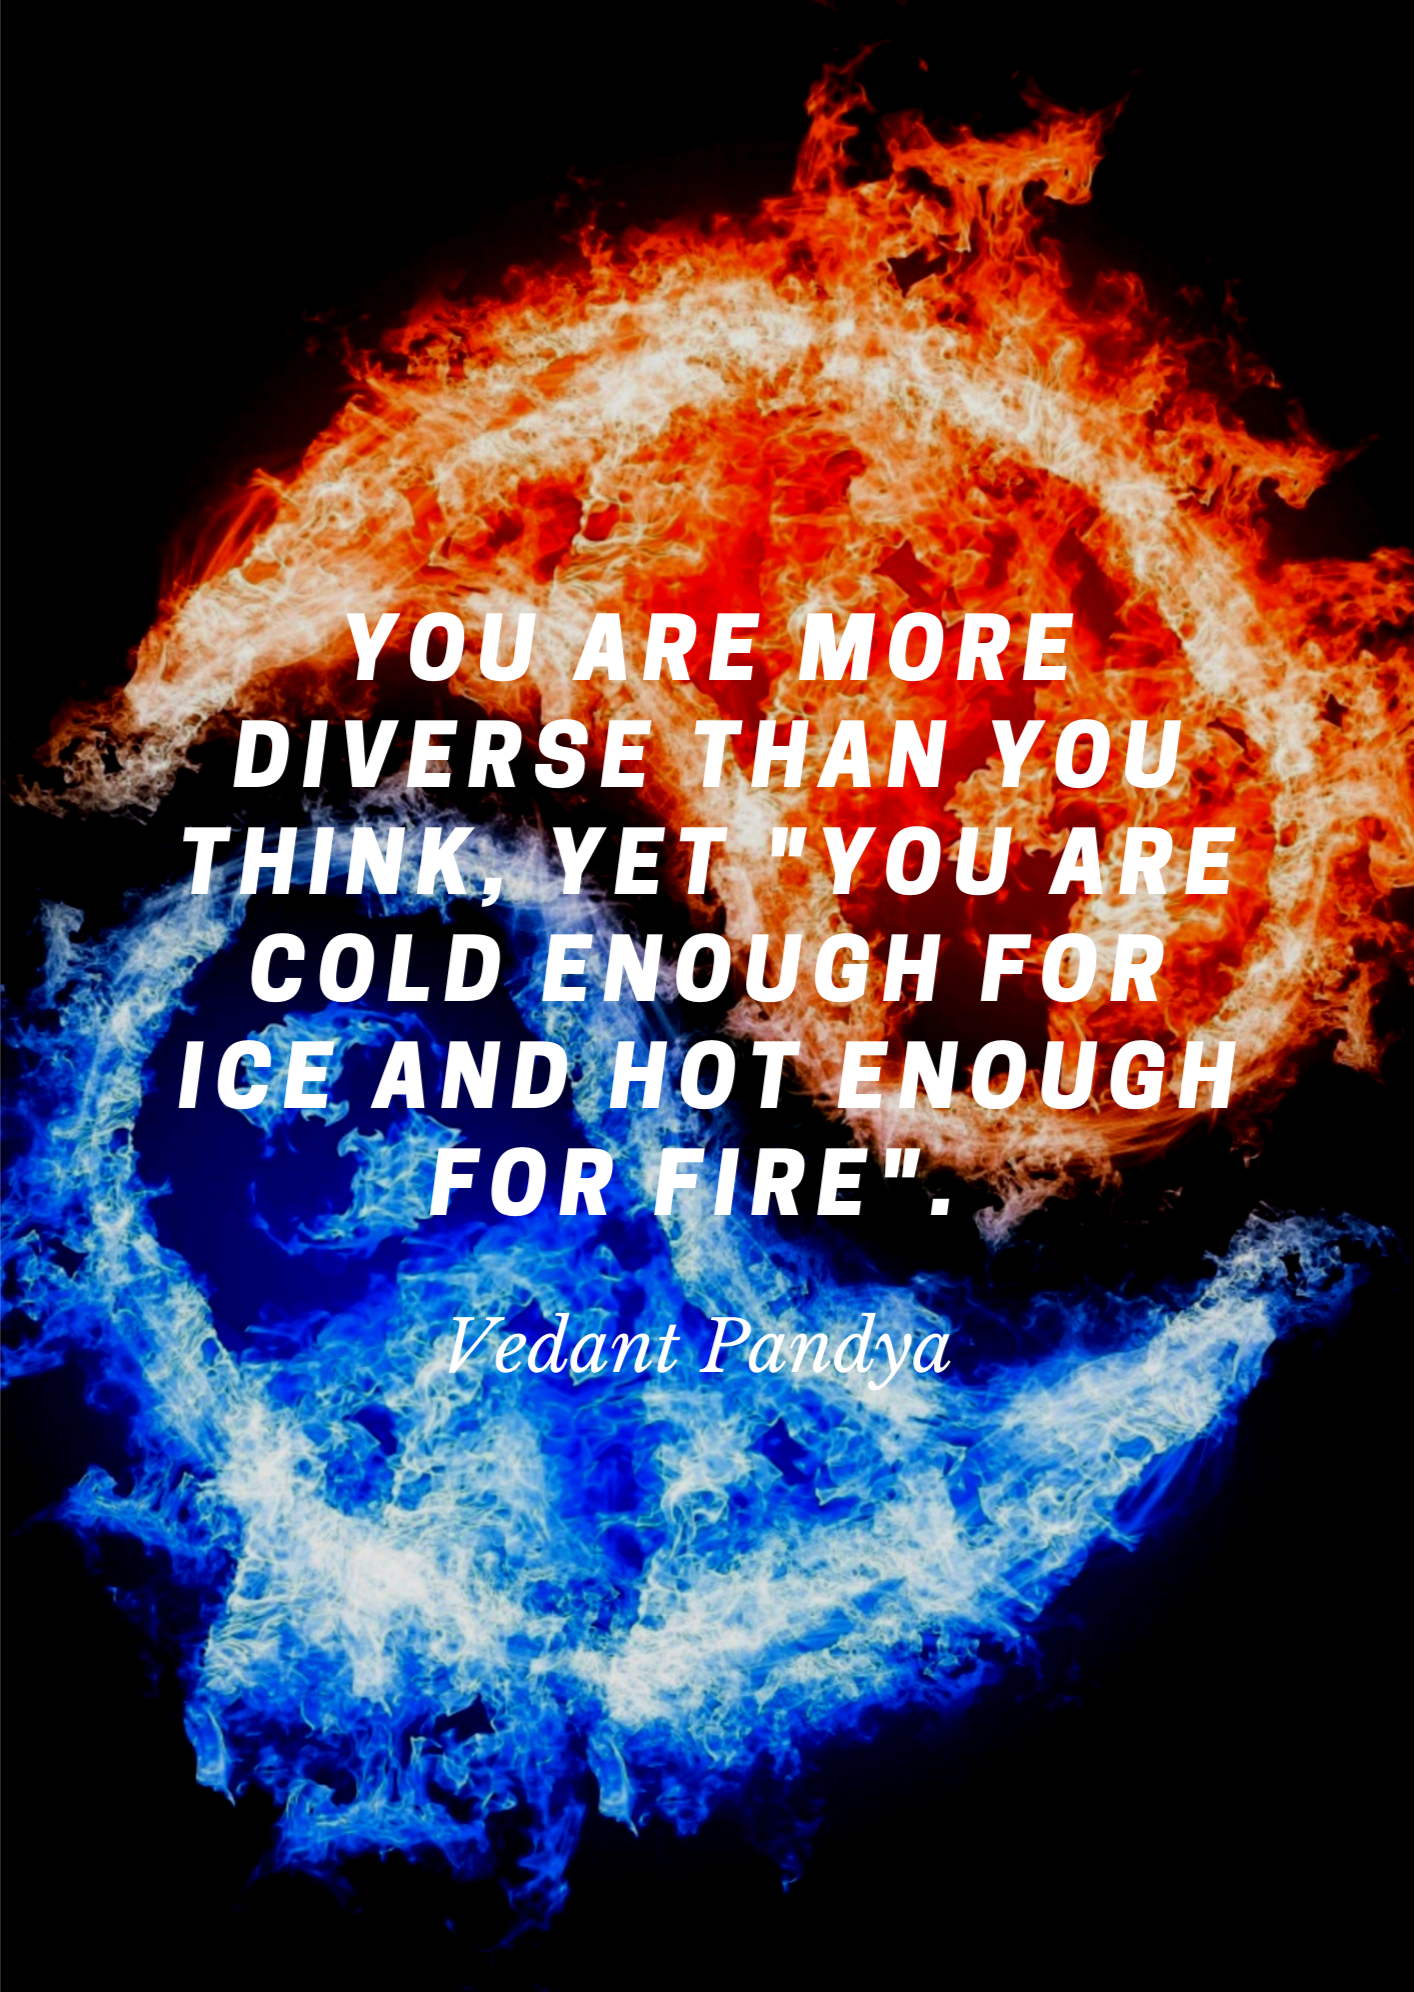 "You are more diverse than you think, yet ""you are cold enough for ice and hot enough for fire"". -Vedant Pandya [1414×1992]"